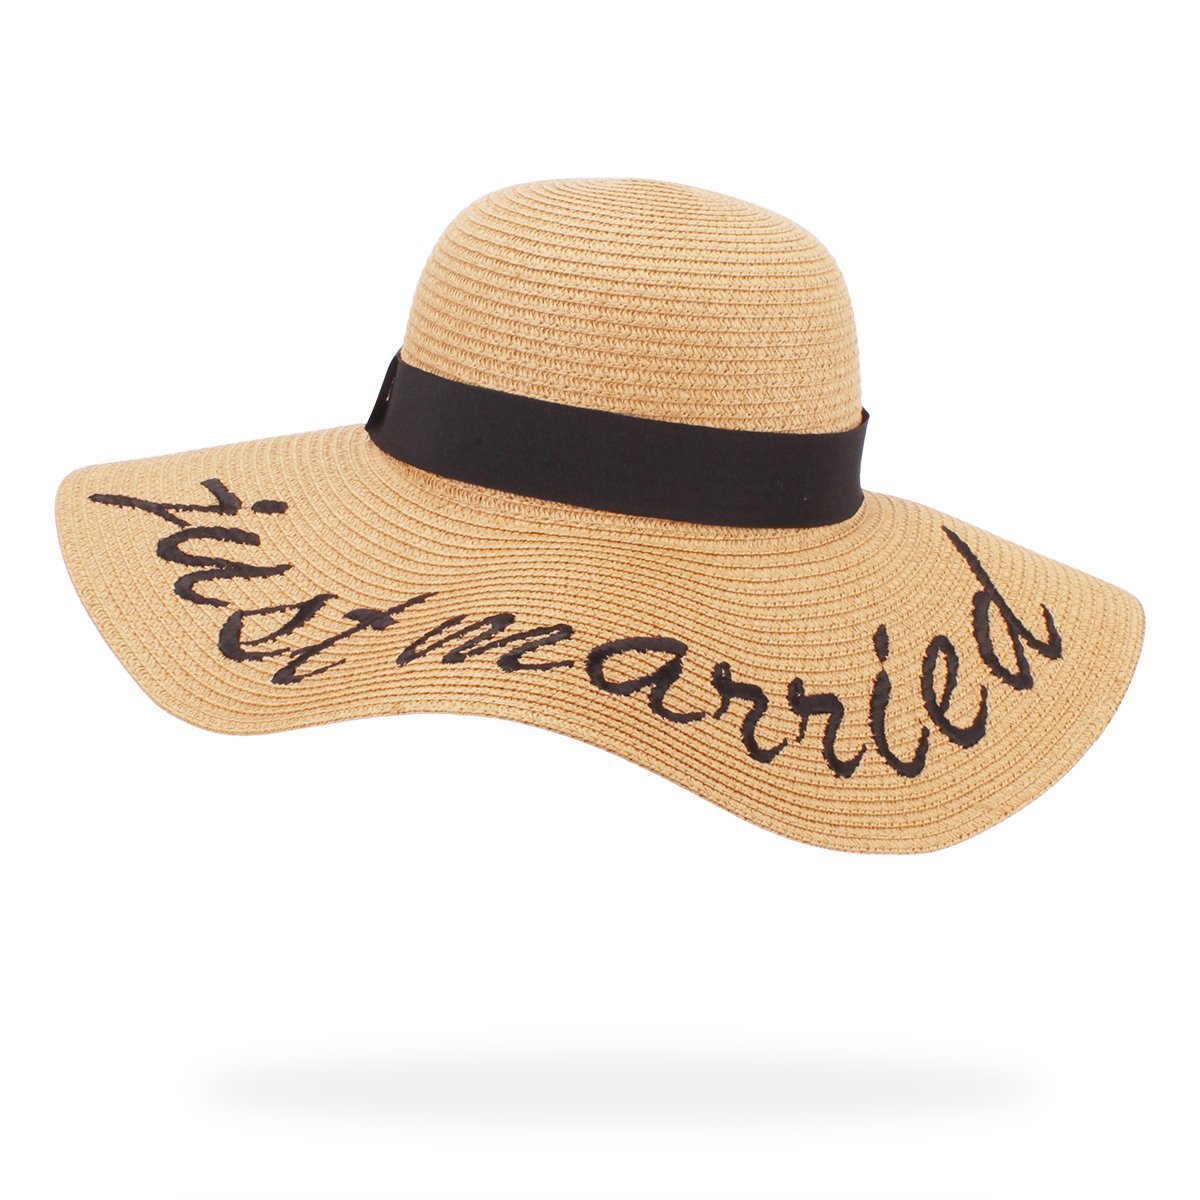 belababy Sun Hat just Married Embroidery for Bride Honeymoon Travel Summer UPF 50+